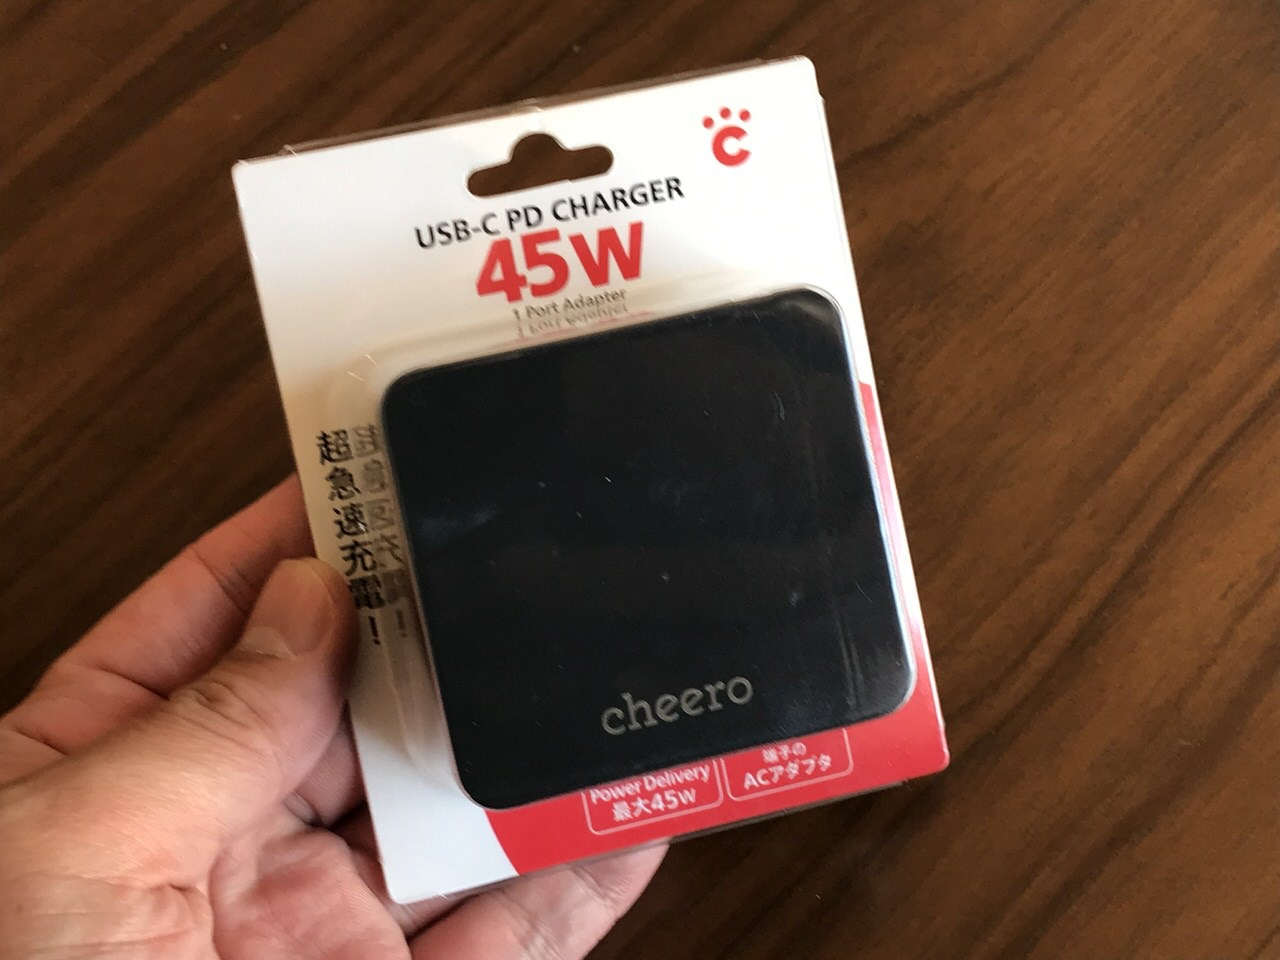 cheero USB-C PD Charger 45W 01